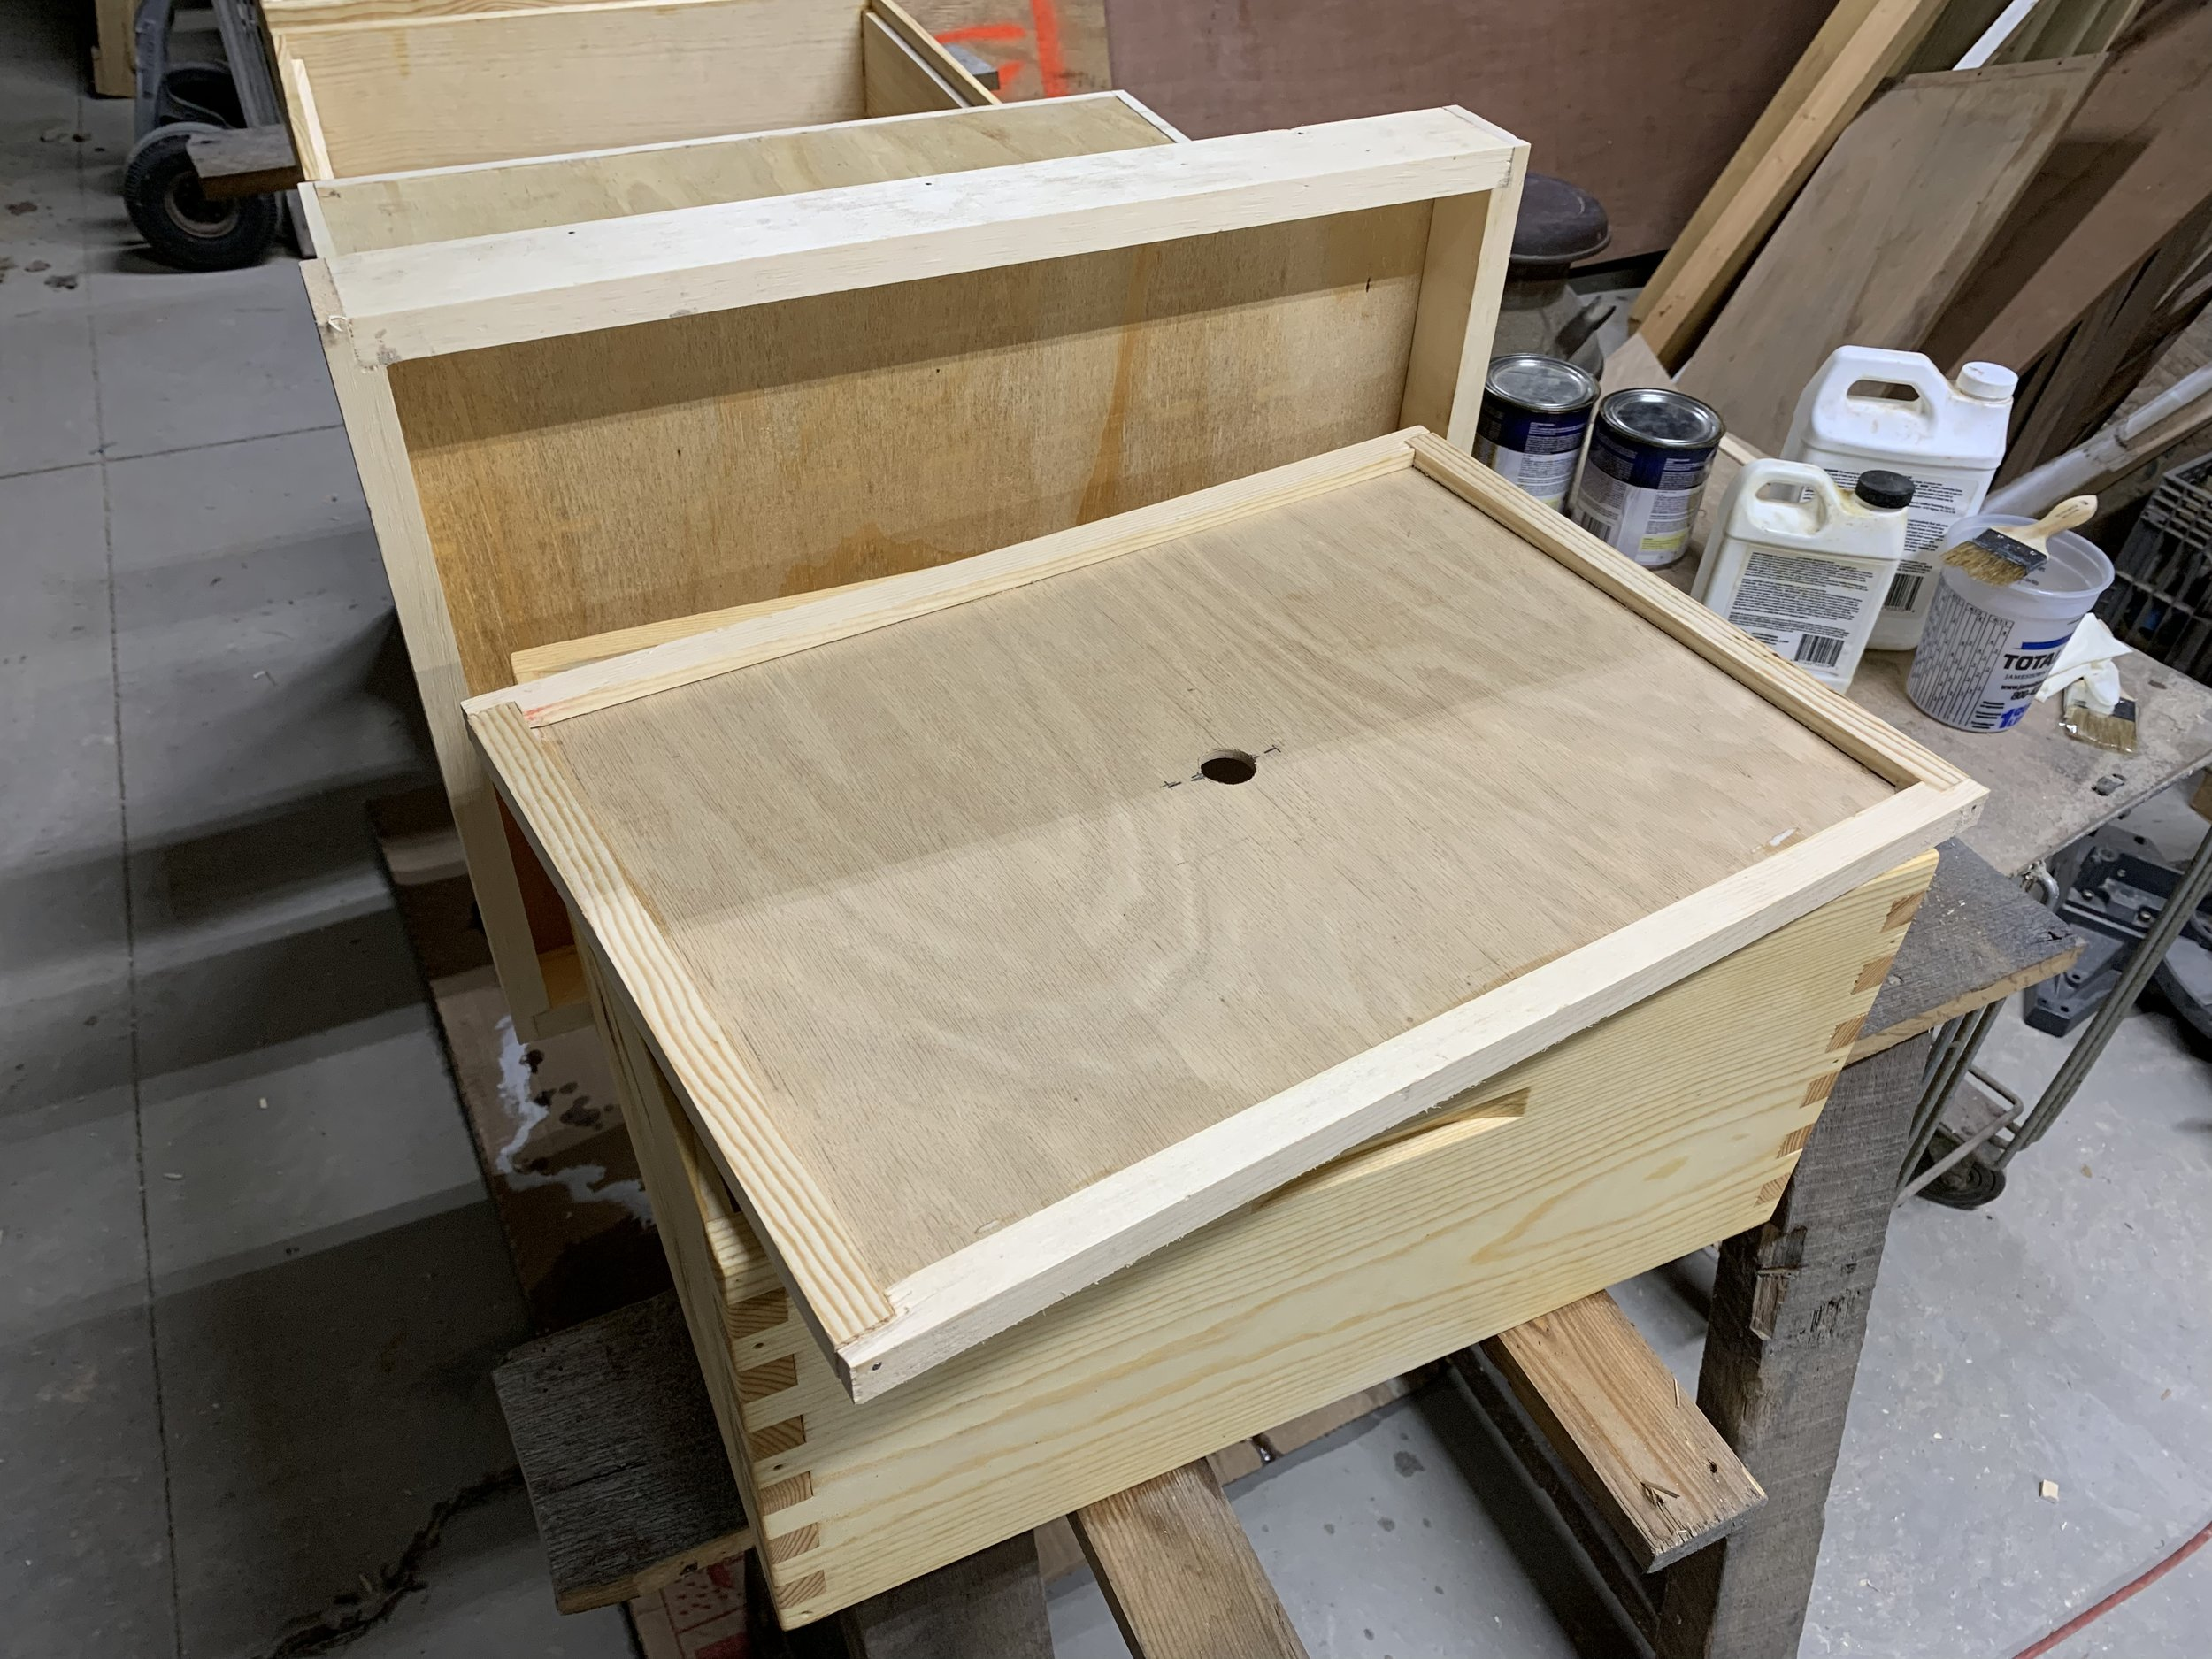 How to make an inner cover for a beehive